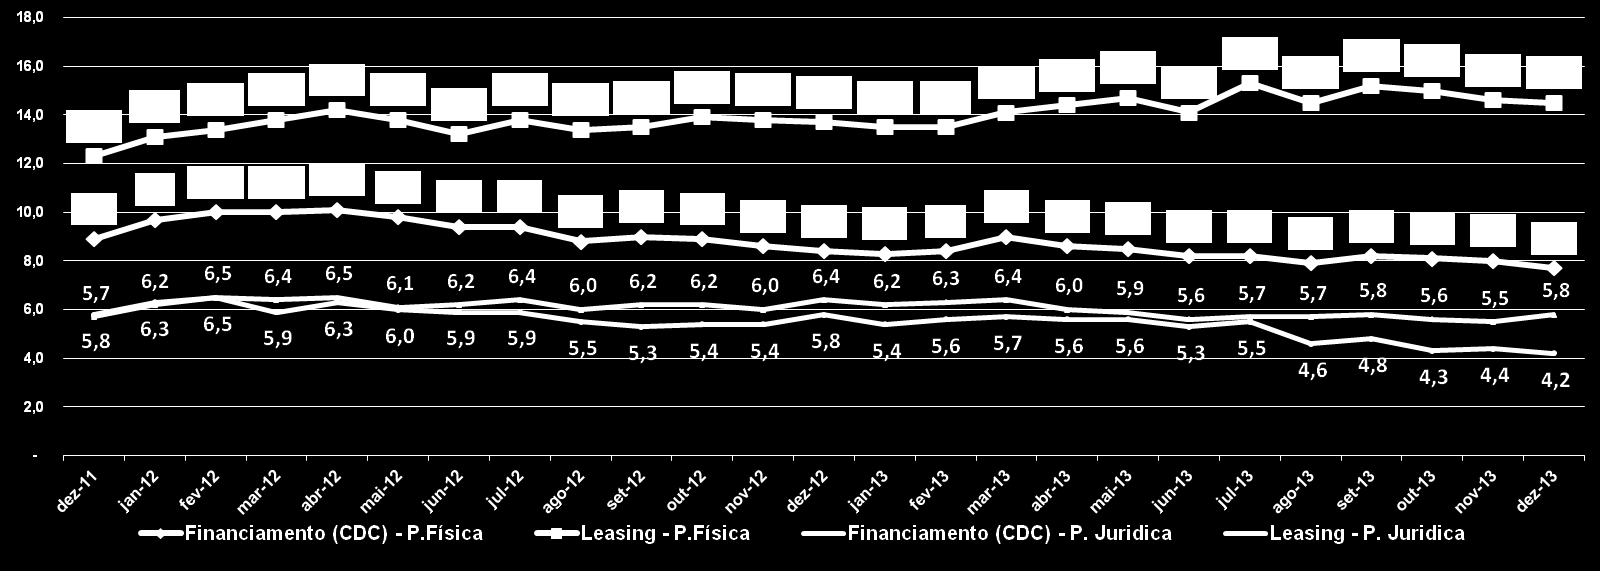 % Atrasos do total da Carteira - Financiamentos (CDC) - P. Fisica = 7,7% ( -0,3 p.p. mês; -0,7 p.p. no ano) % Atrasos do total da Carteira - LEASING - P.Física = 14,5% ( -0,1 p.p. mês; +0,8 p.p. no ano) % Atrasos do total da Carteira - Financiamentos (CDC) - P.